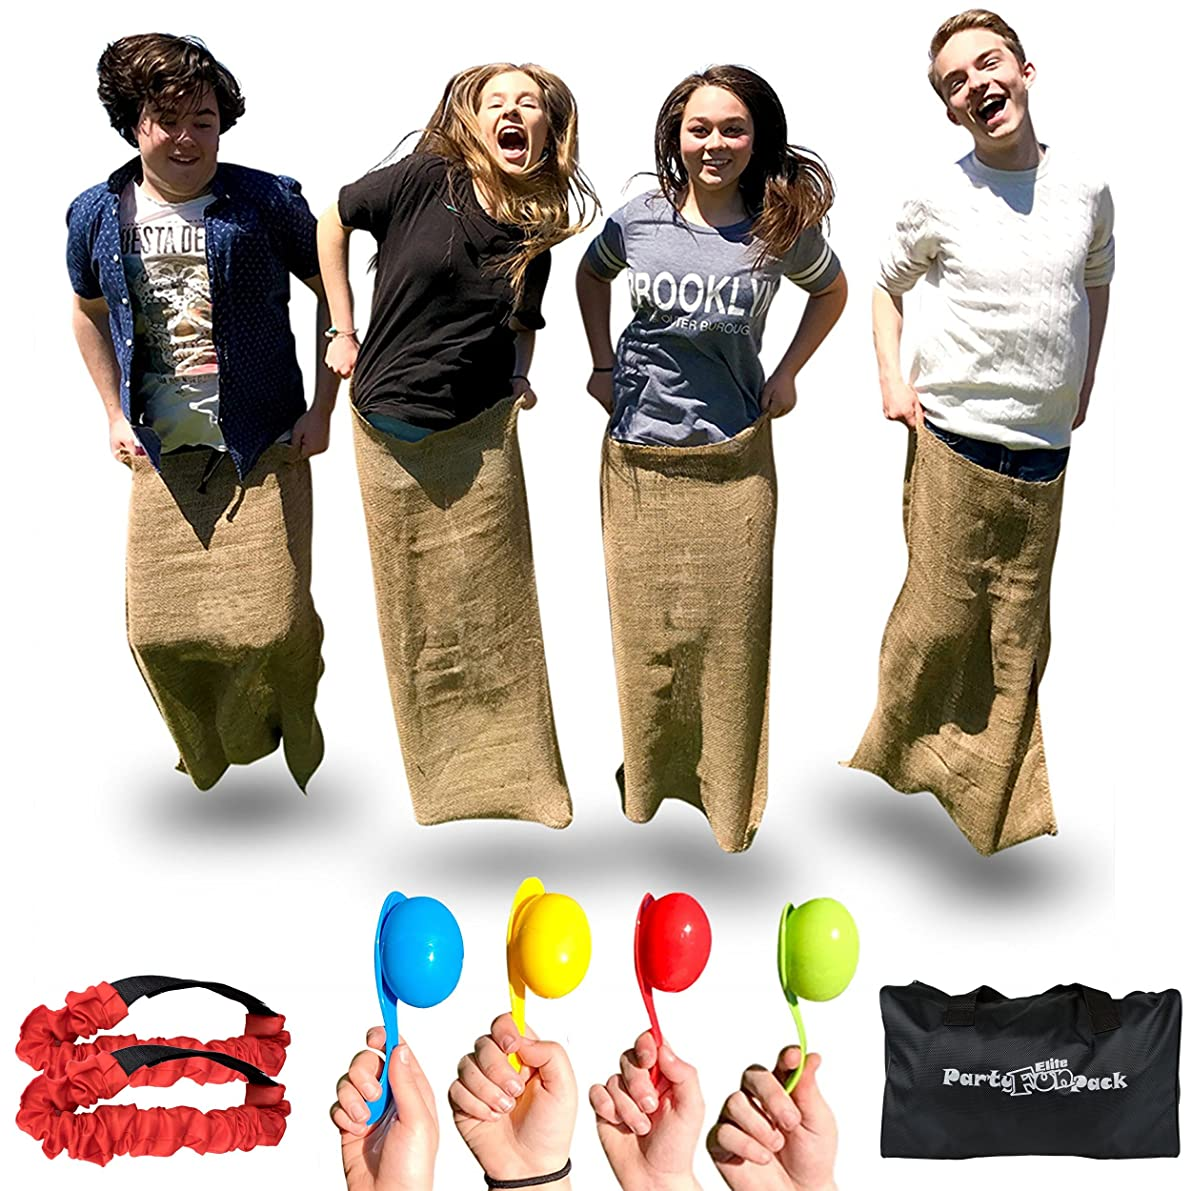 Elite Potato Sack Race Bags - 3 Fun Outdoor Games for Family, 3 Fun Party Games for Kids - Active Outside Games to Get Kids Moving. Potato Sack Race Bags for Kids Store Away in a Neat Compact Bag